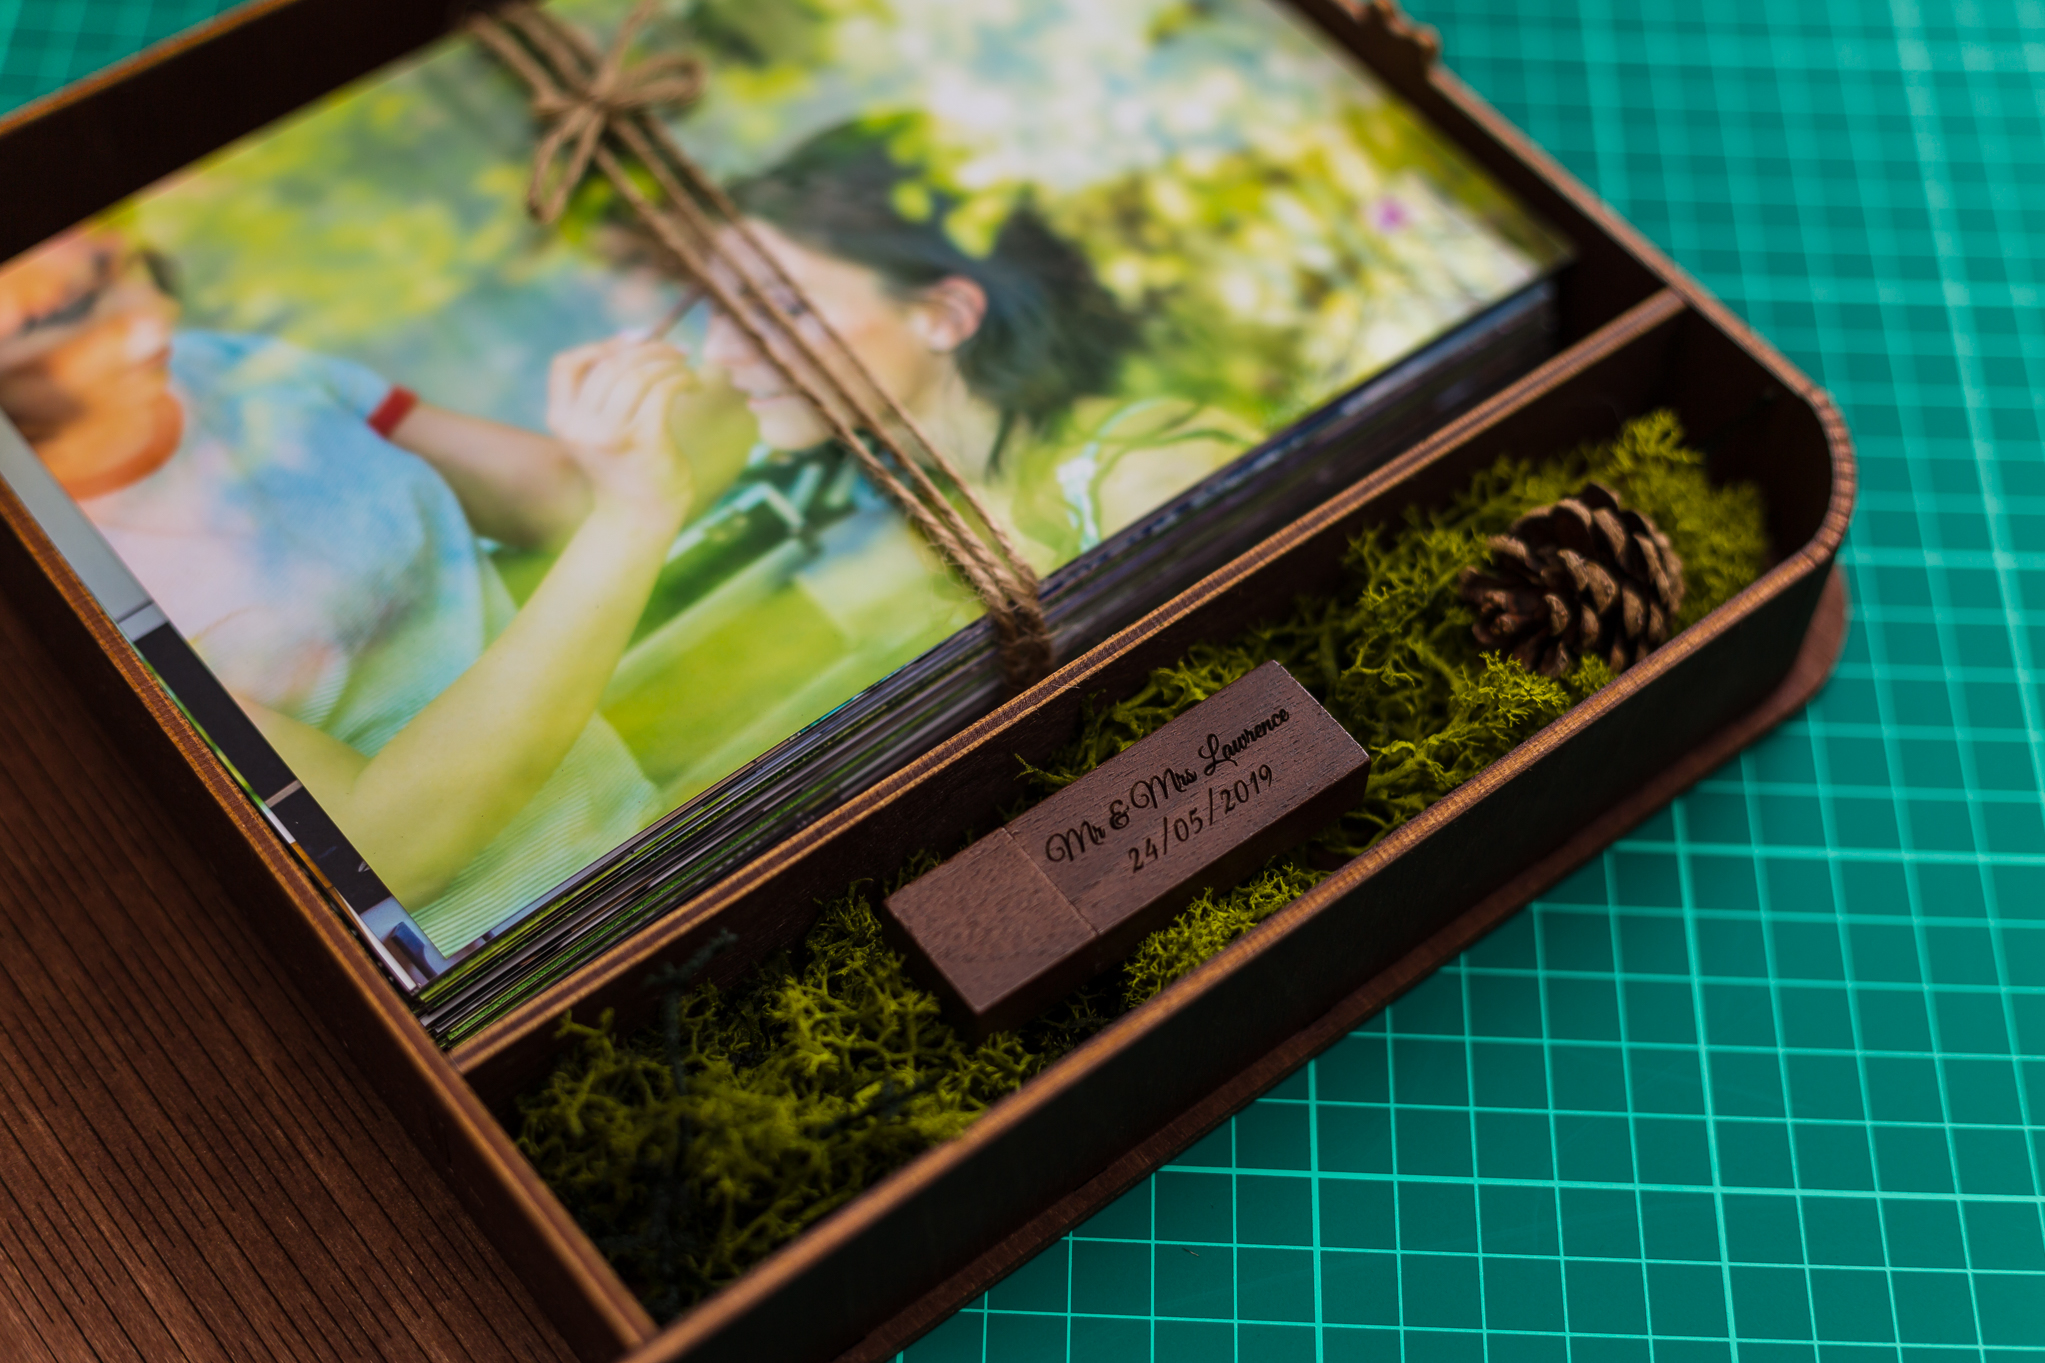 USB + Presentation Box - £150 - If you want to keep your photos in a stylish presentation box that matches a USB (a few designs are available!) then let me know that you wish to add this to your package! (it is already included in the All Inclusive Package!